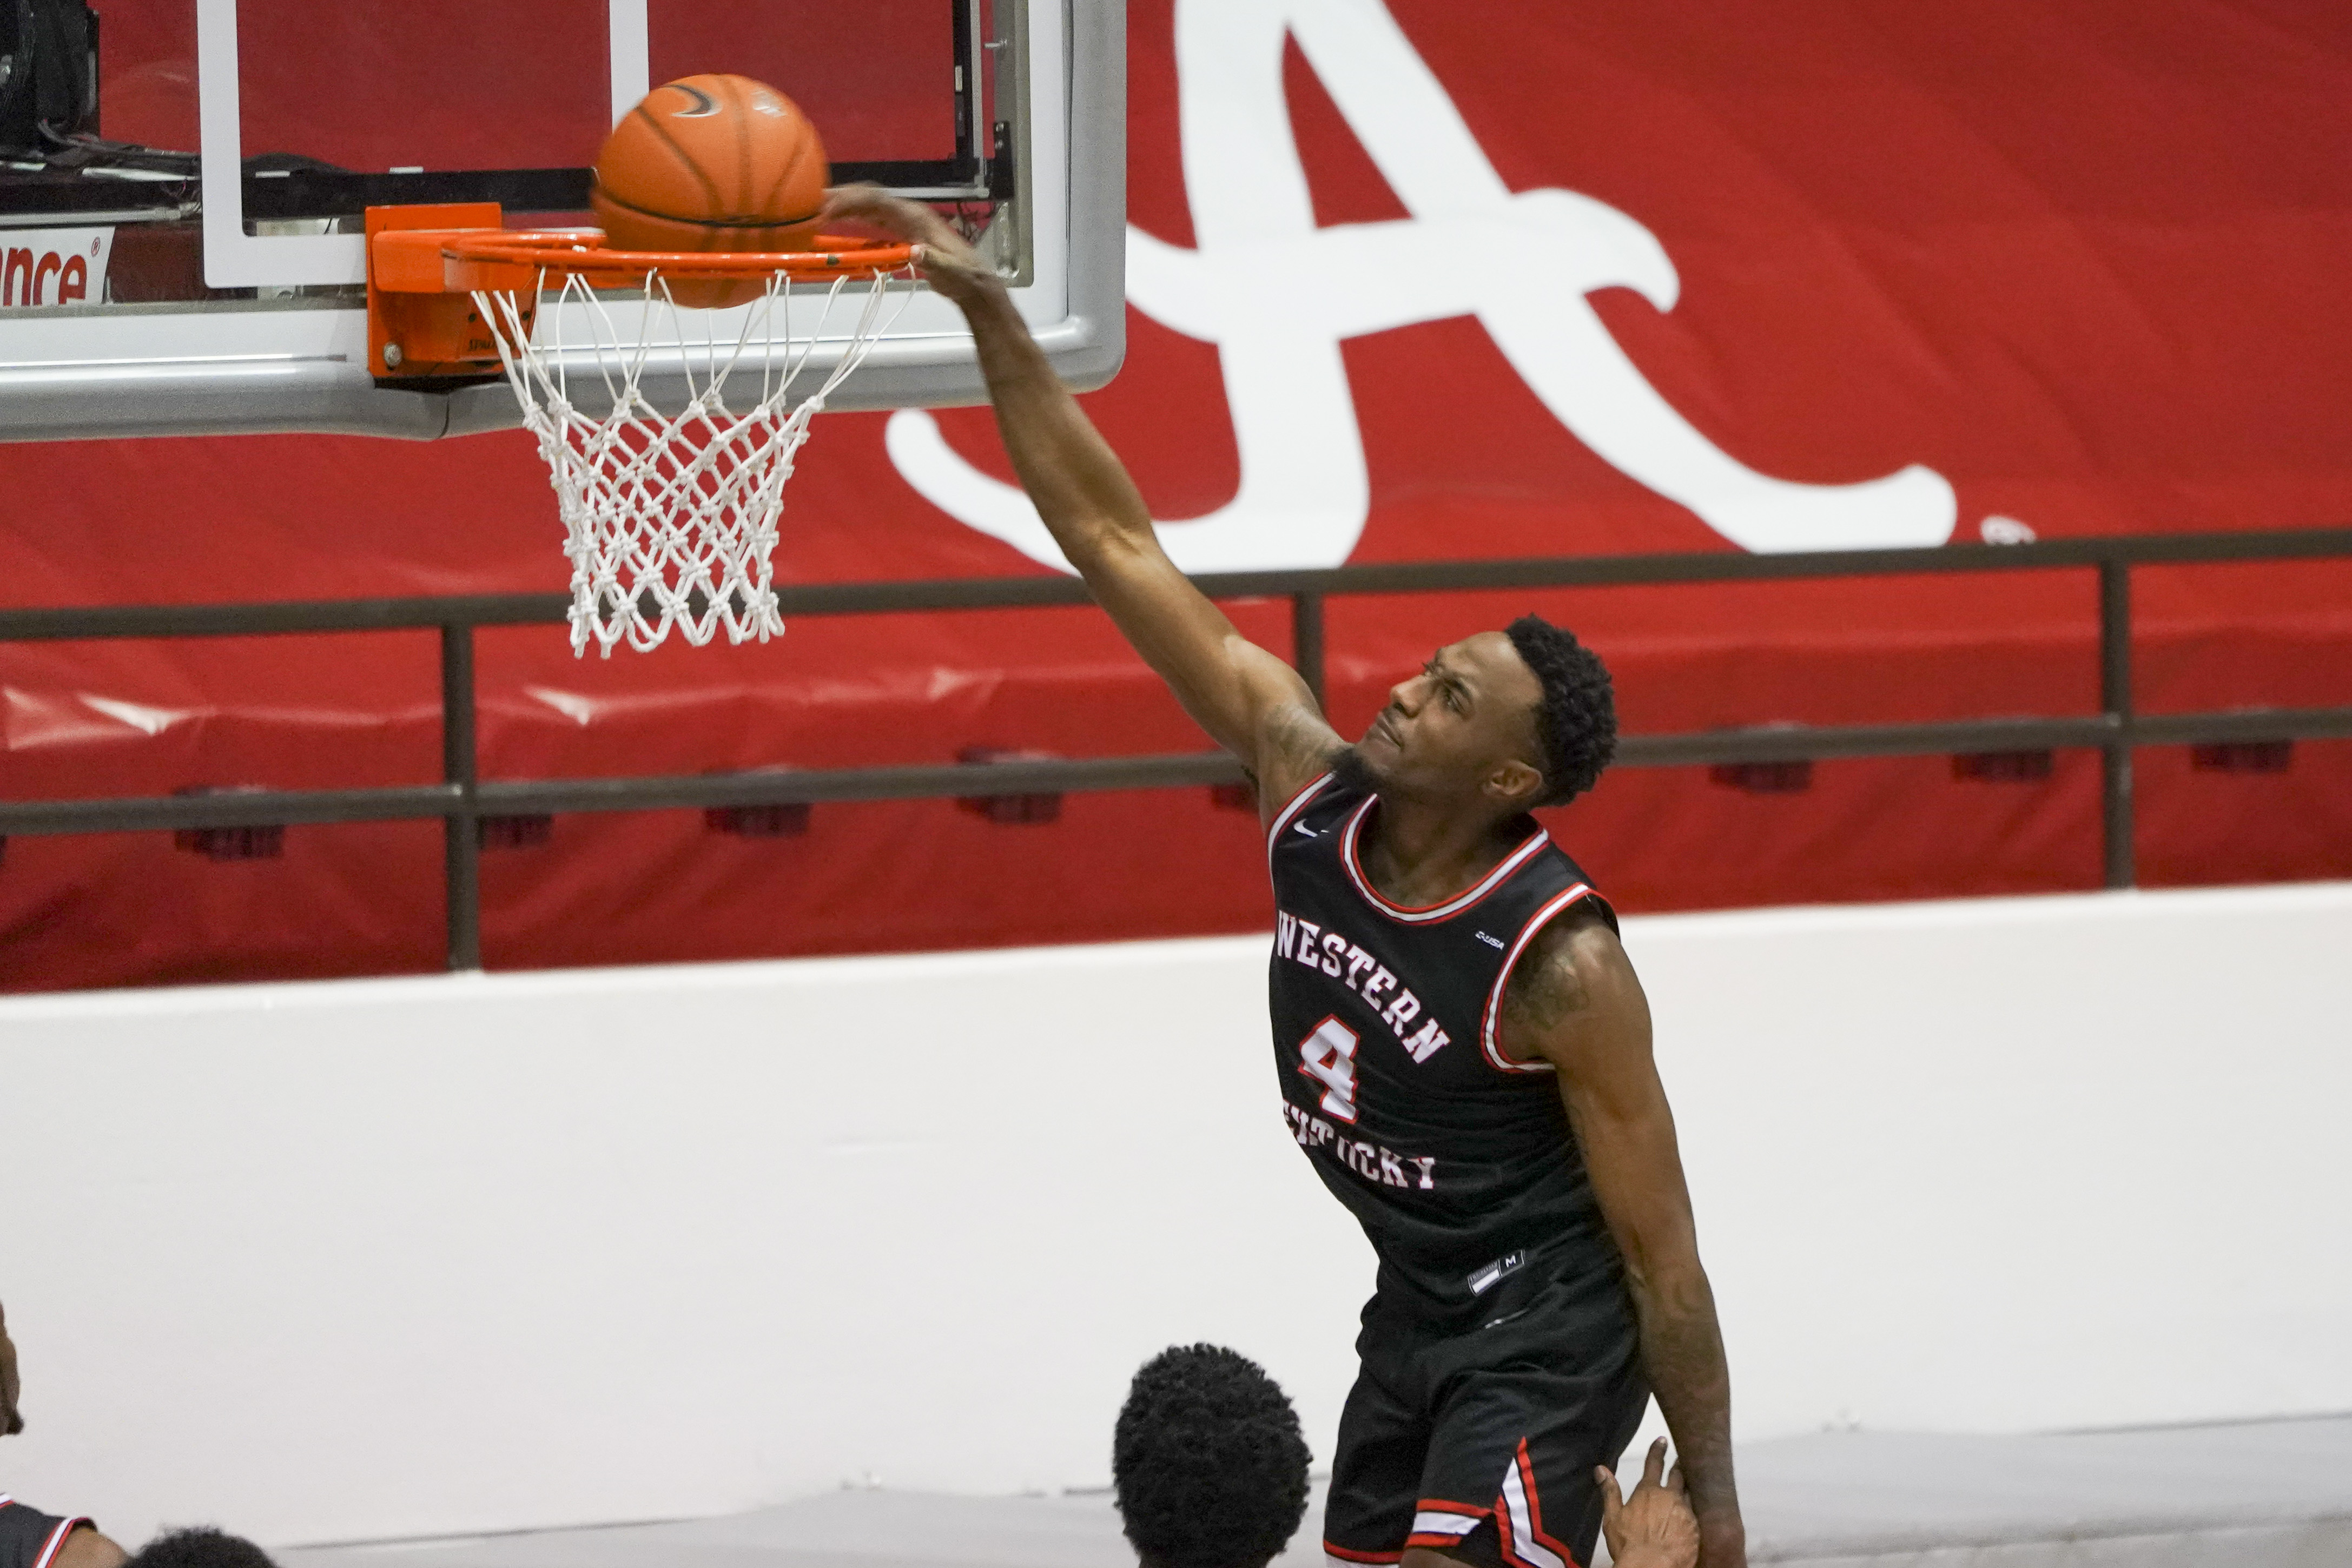 Western Kentucky Hilltoppers guard Josh Anderson takes the ball to the basket against Alabama Crimson Tide during the second half at Coleman Coliseum.